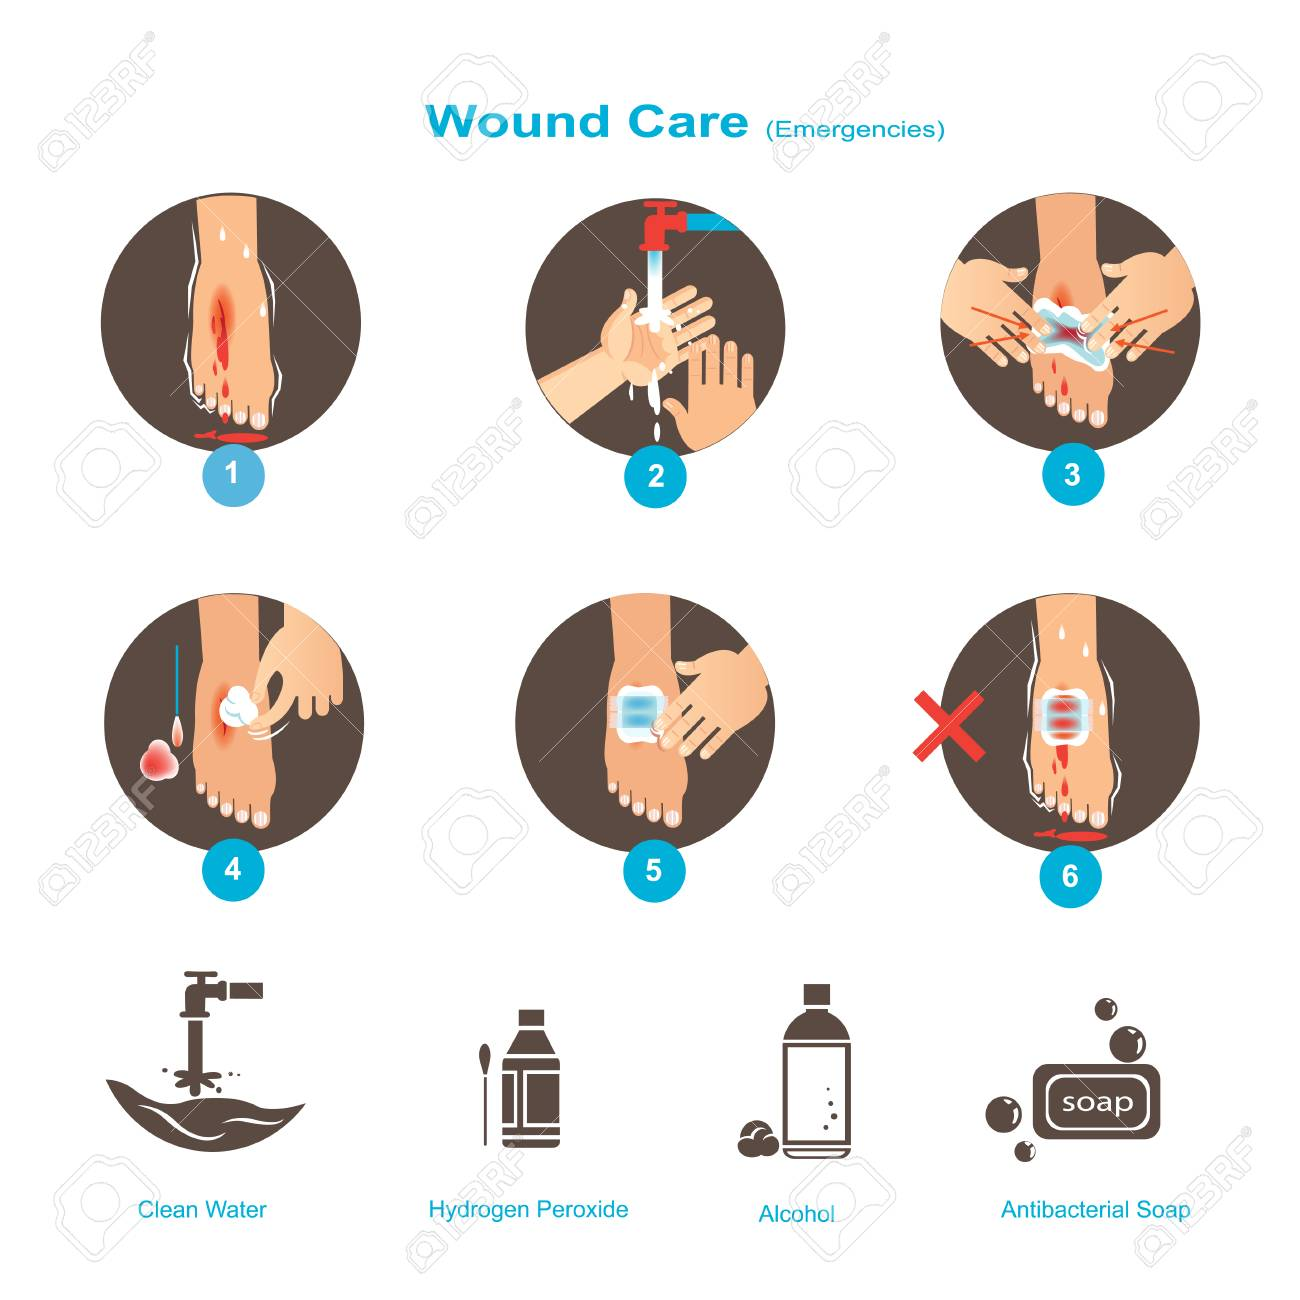 Wound Care Your First Aid Care Guide Vector illustrations. - 93367159